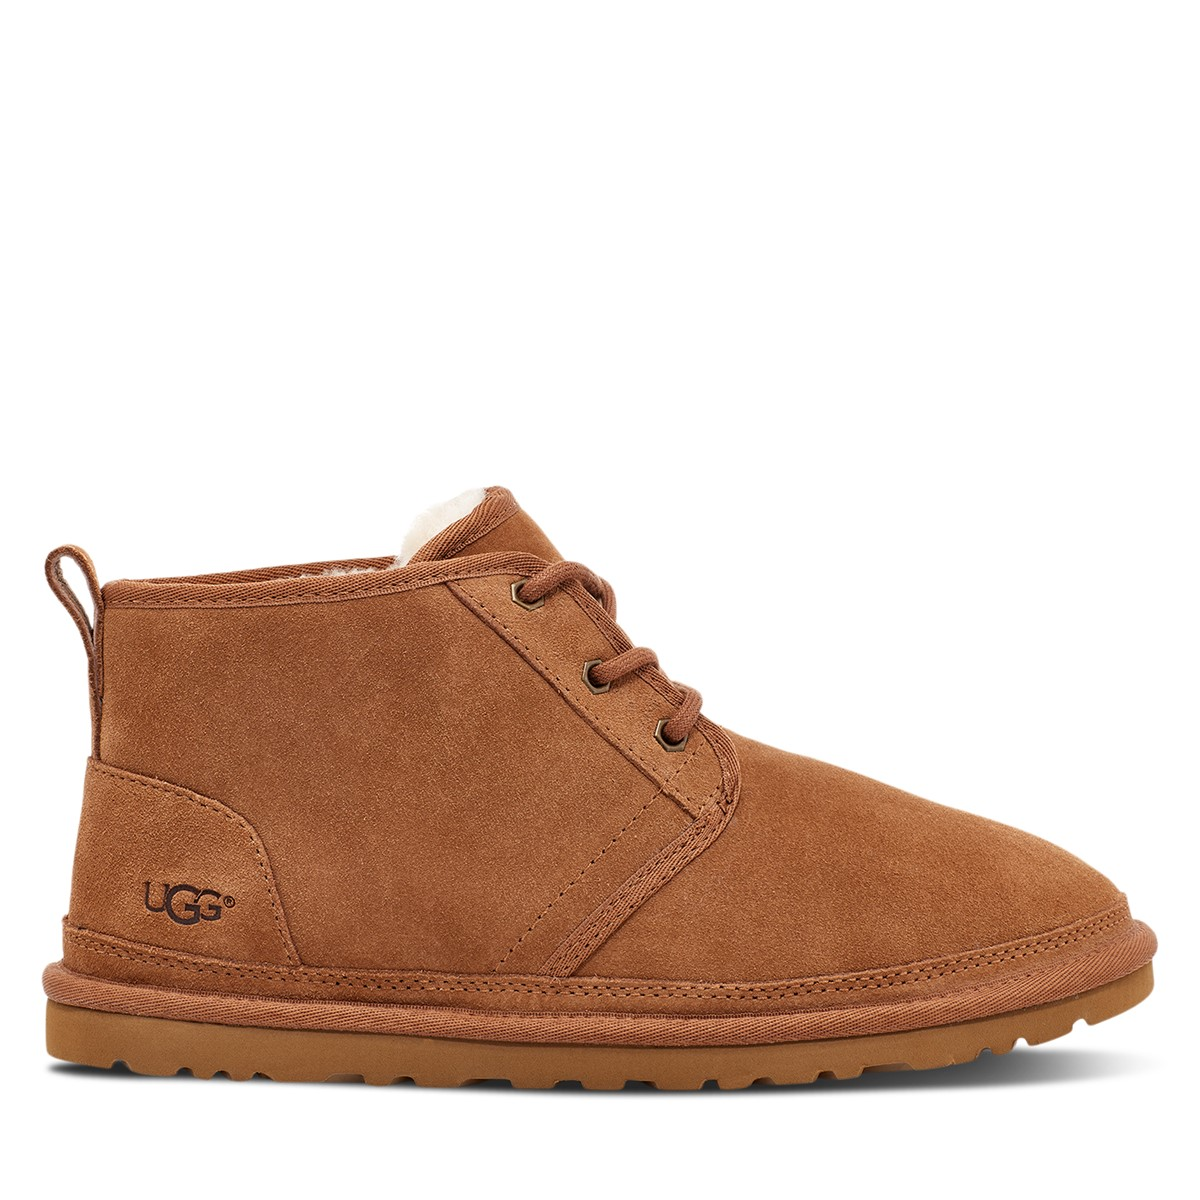 Men's Neumel Lace-Up Boots in Chesnut